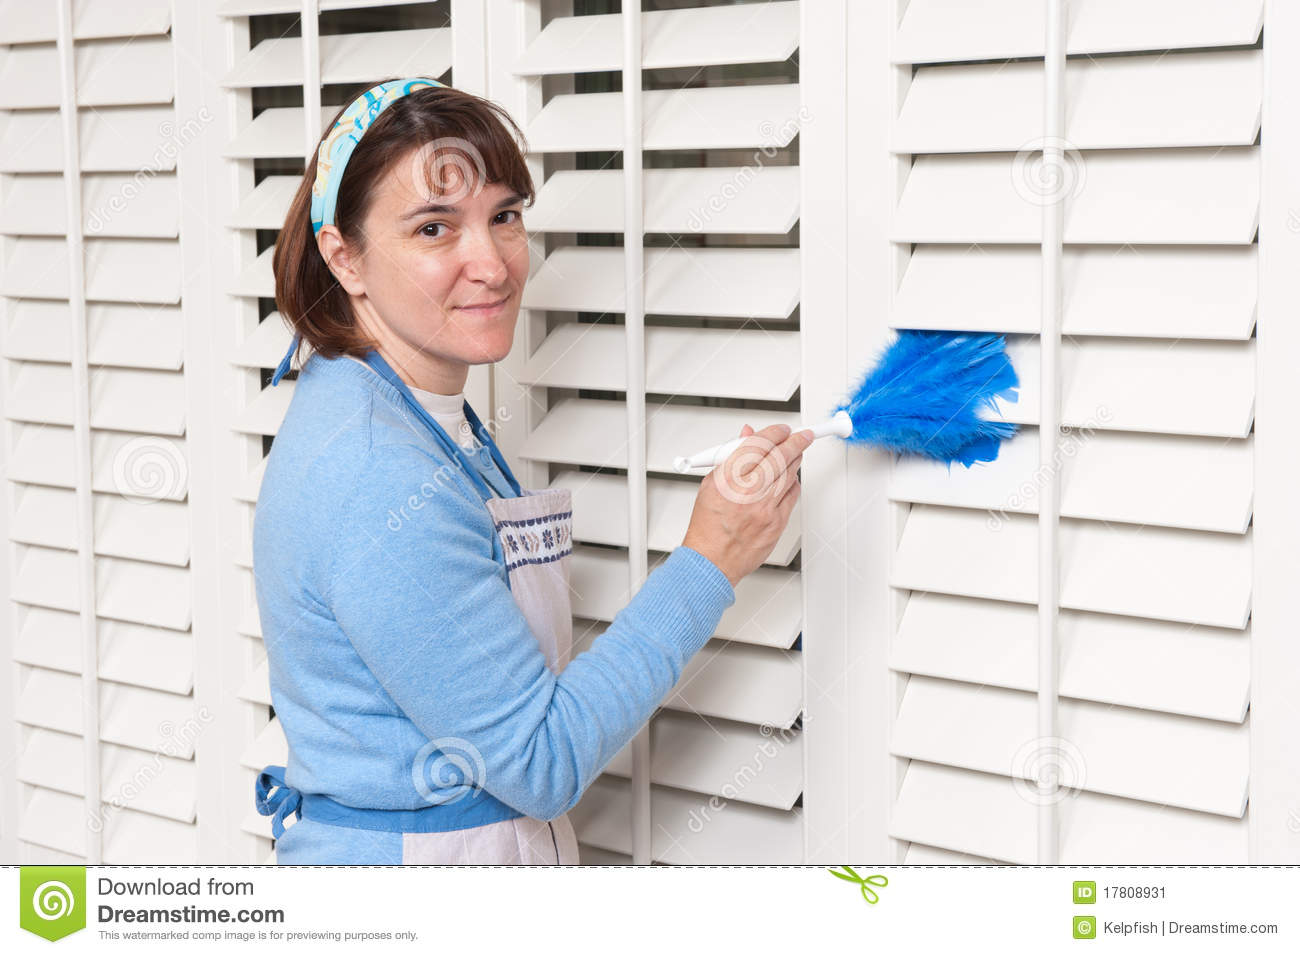 how to clean stuck shutter